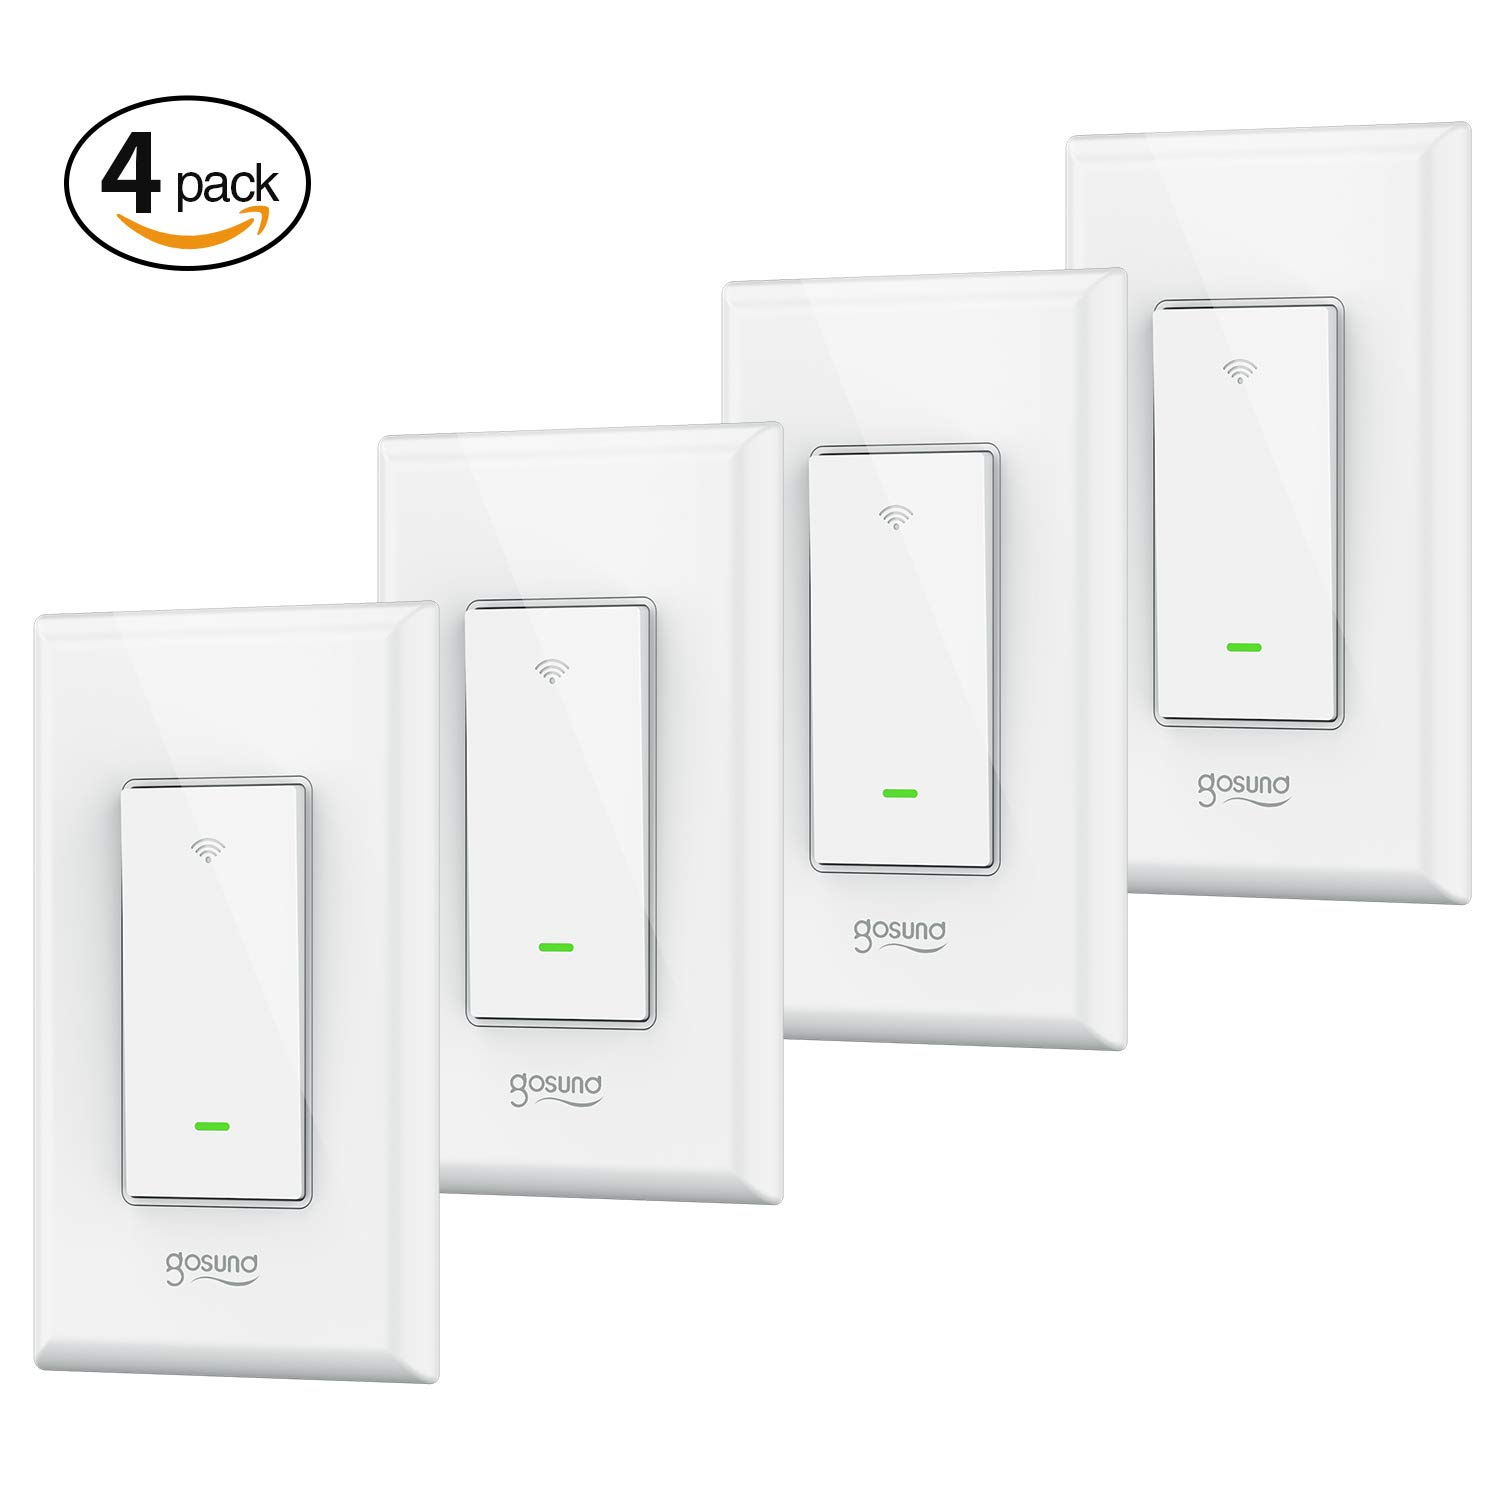 Smart Wi-Fi Light Switch, TanTan 15A In-wall Smart Switch that Compatible with Alexa, Google Home and IFTTT, Single-Pole, No Hub required [Timer, Scene, Group Control], ETL and FCC listed. (4 pack)